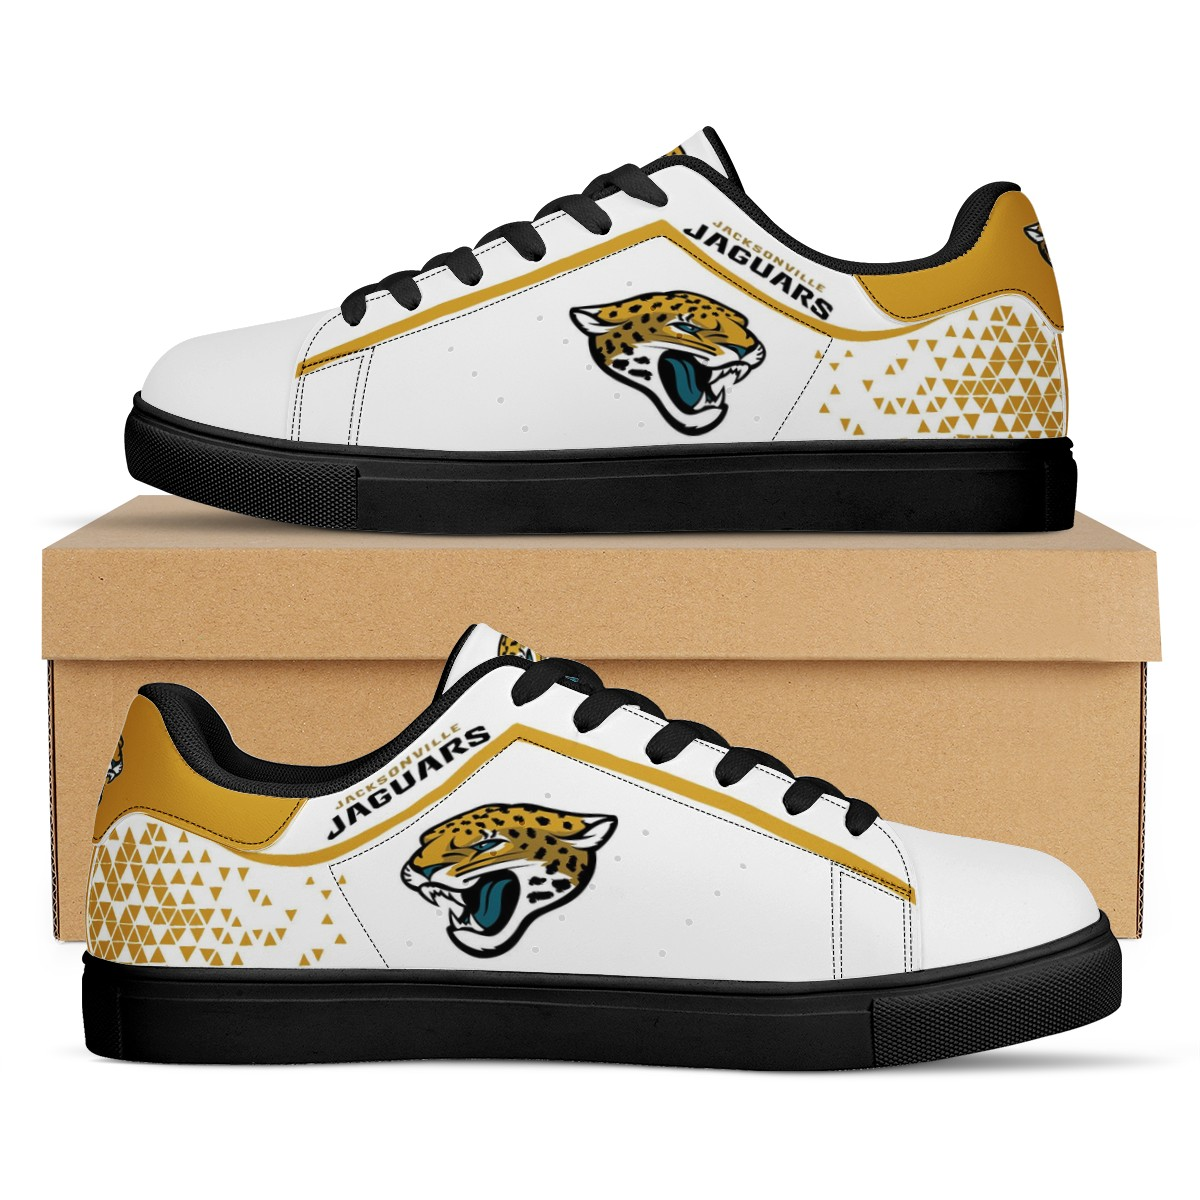 Men's Jacksonville Jaguars Low Top Leather Sneakers 001